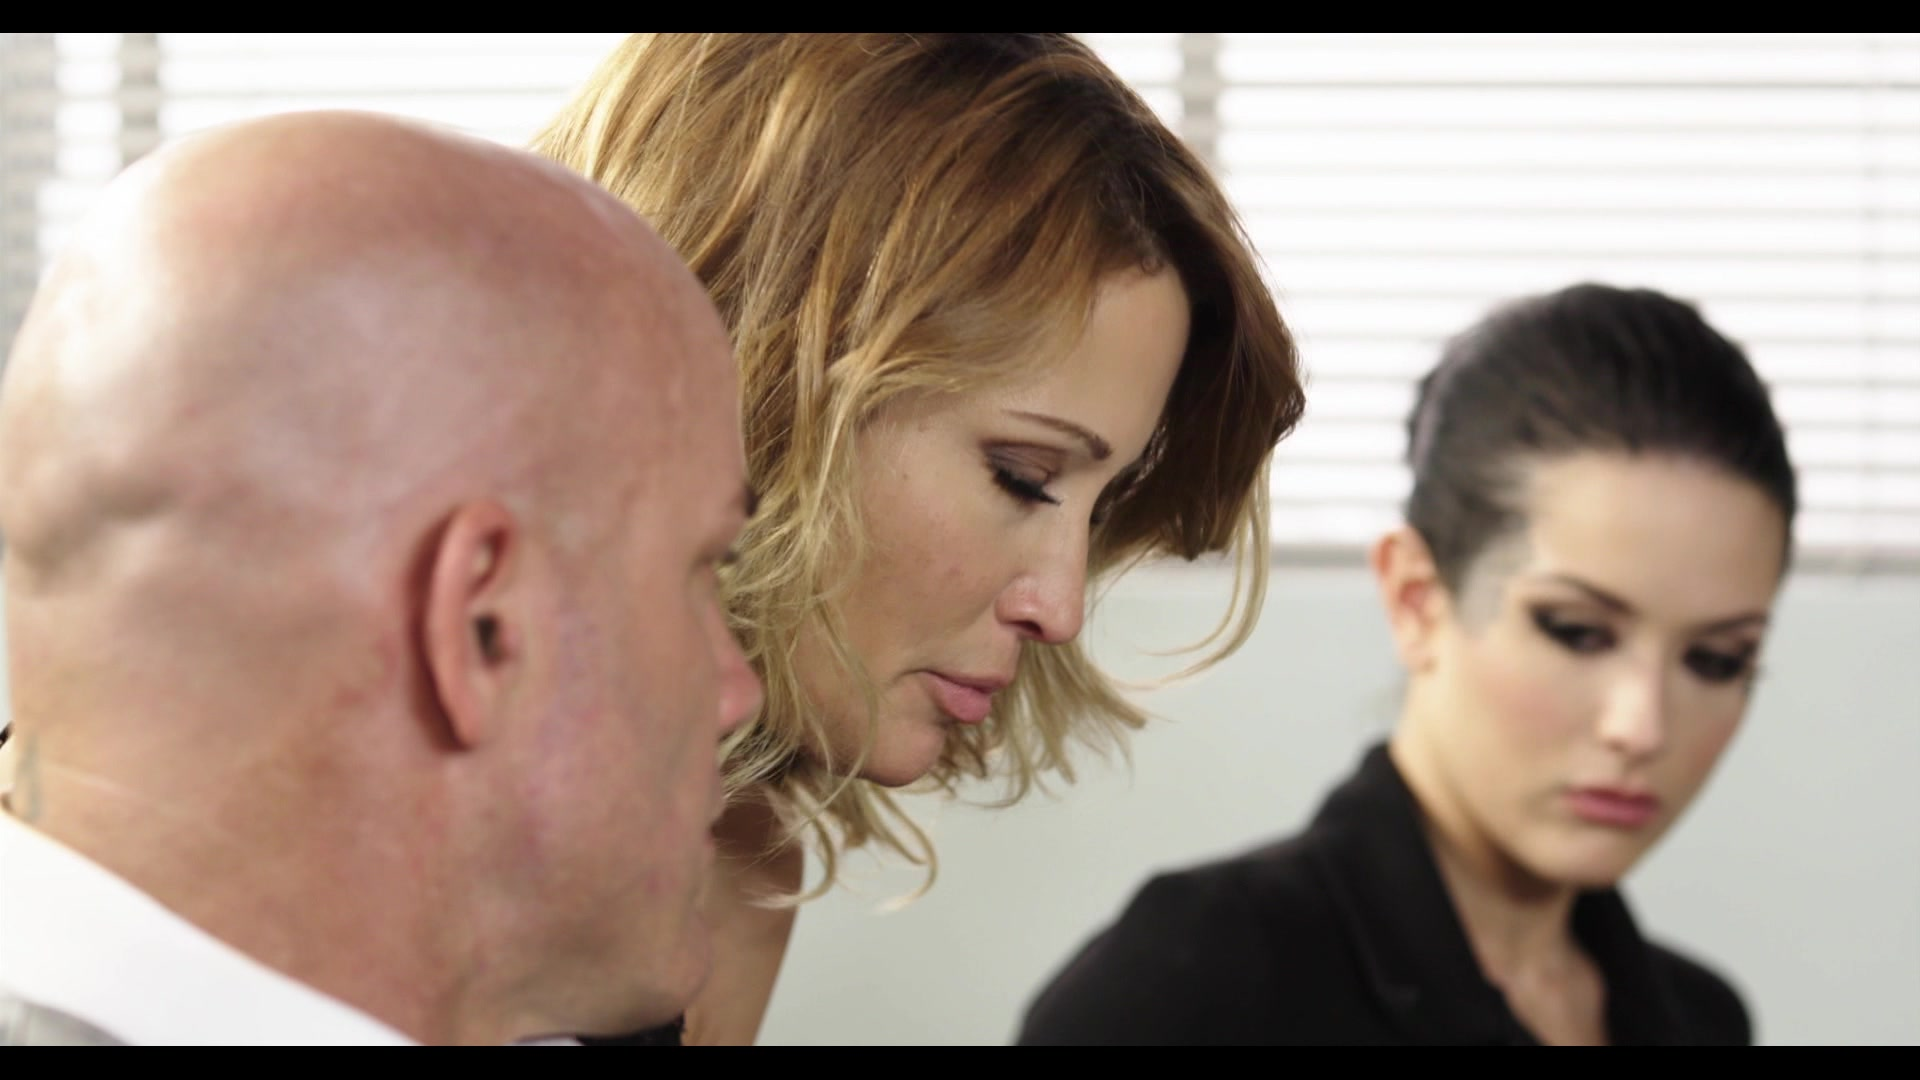 Scene with Jessica Drake, Derrick Pierce and Katrina Jade - image 8 out of 20